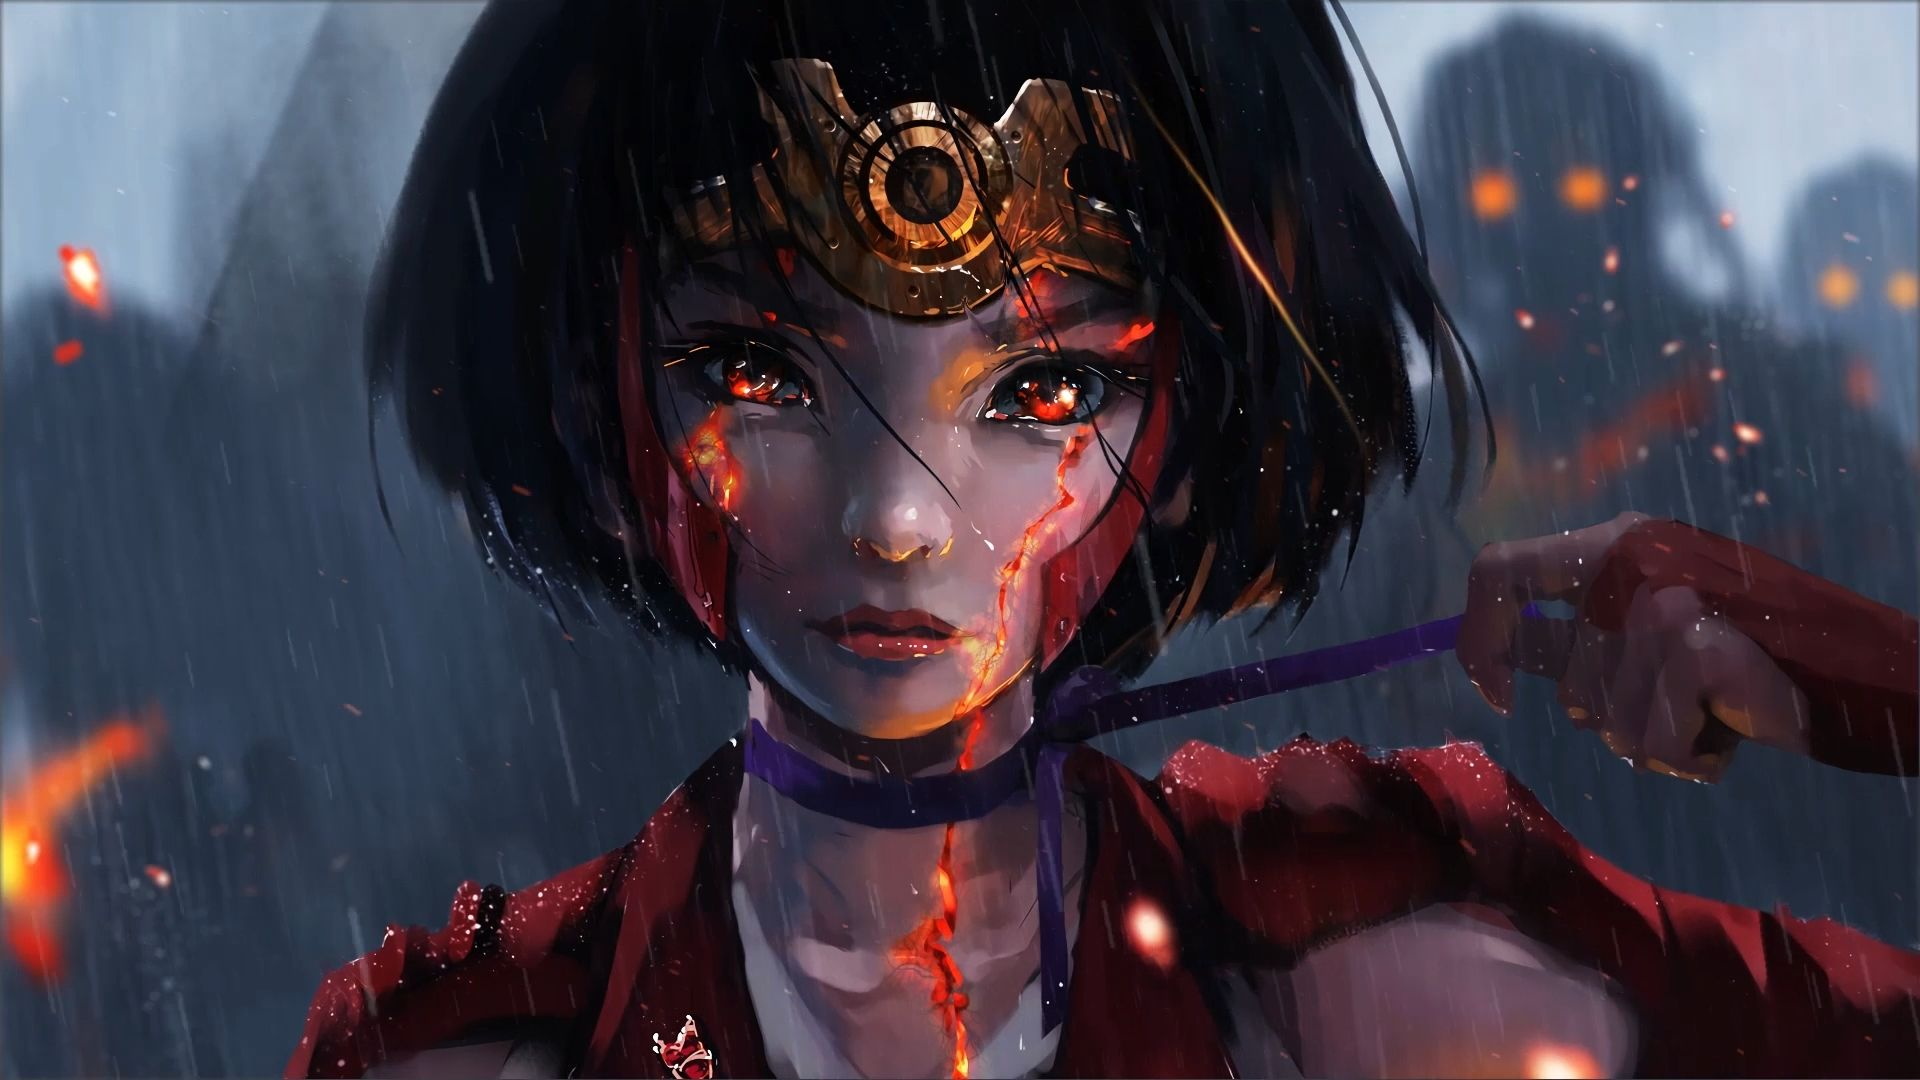 Kabaneri Of The Iron Fortress Mumei 1080p 60fps Wallpaper Engine Anime 1080p Anime Wallpaper Anime Wallpaper Anime Wallpaper Download Anime wallpaper engine free download